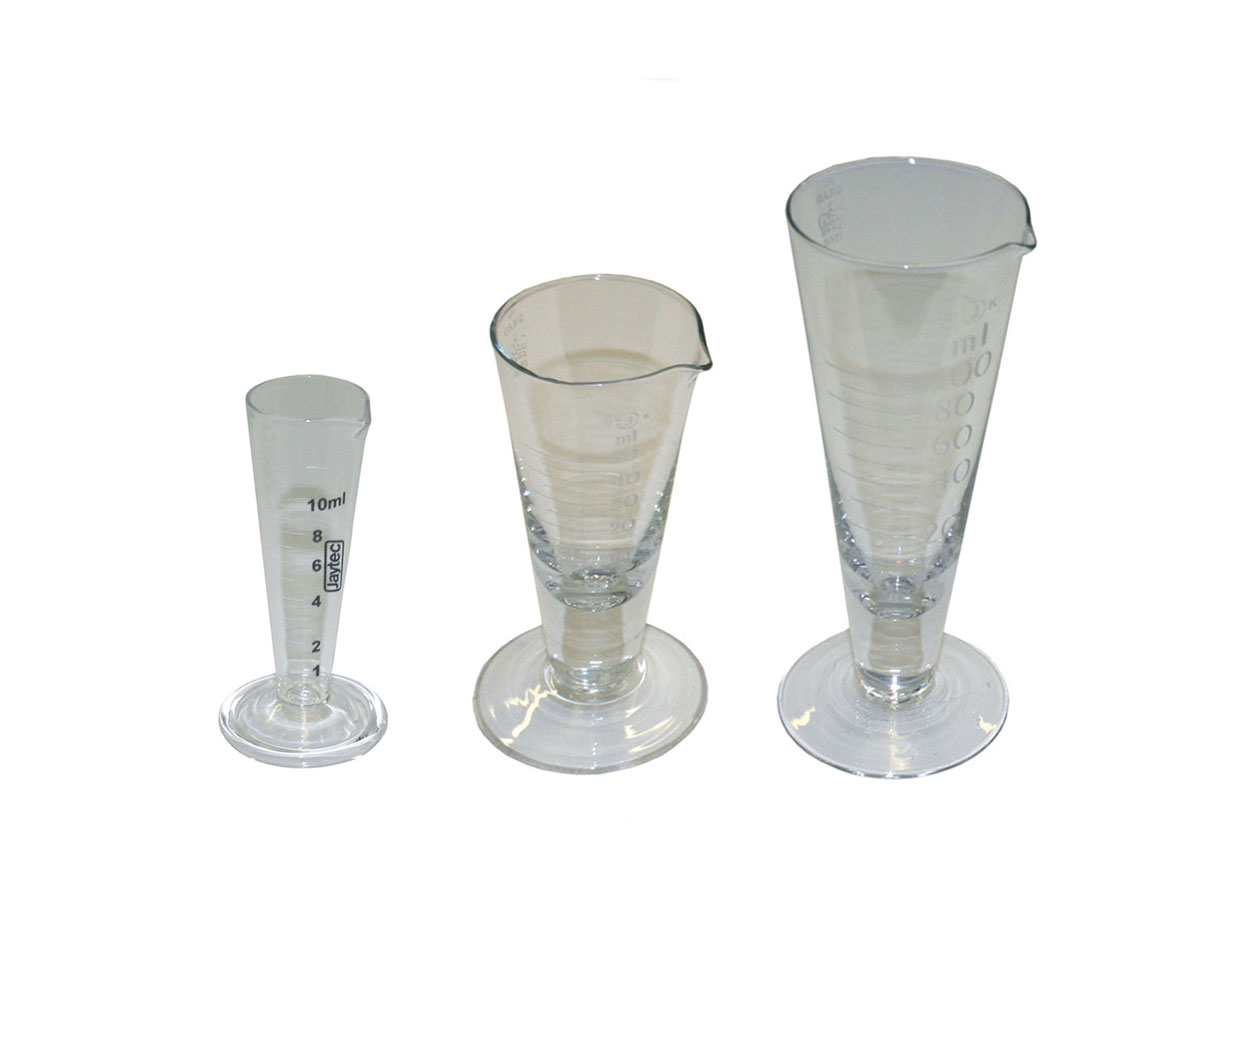 Stamped Conical Measure Dispensing Set